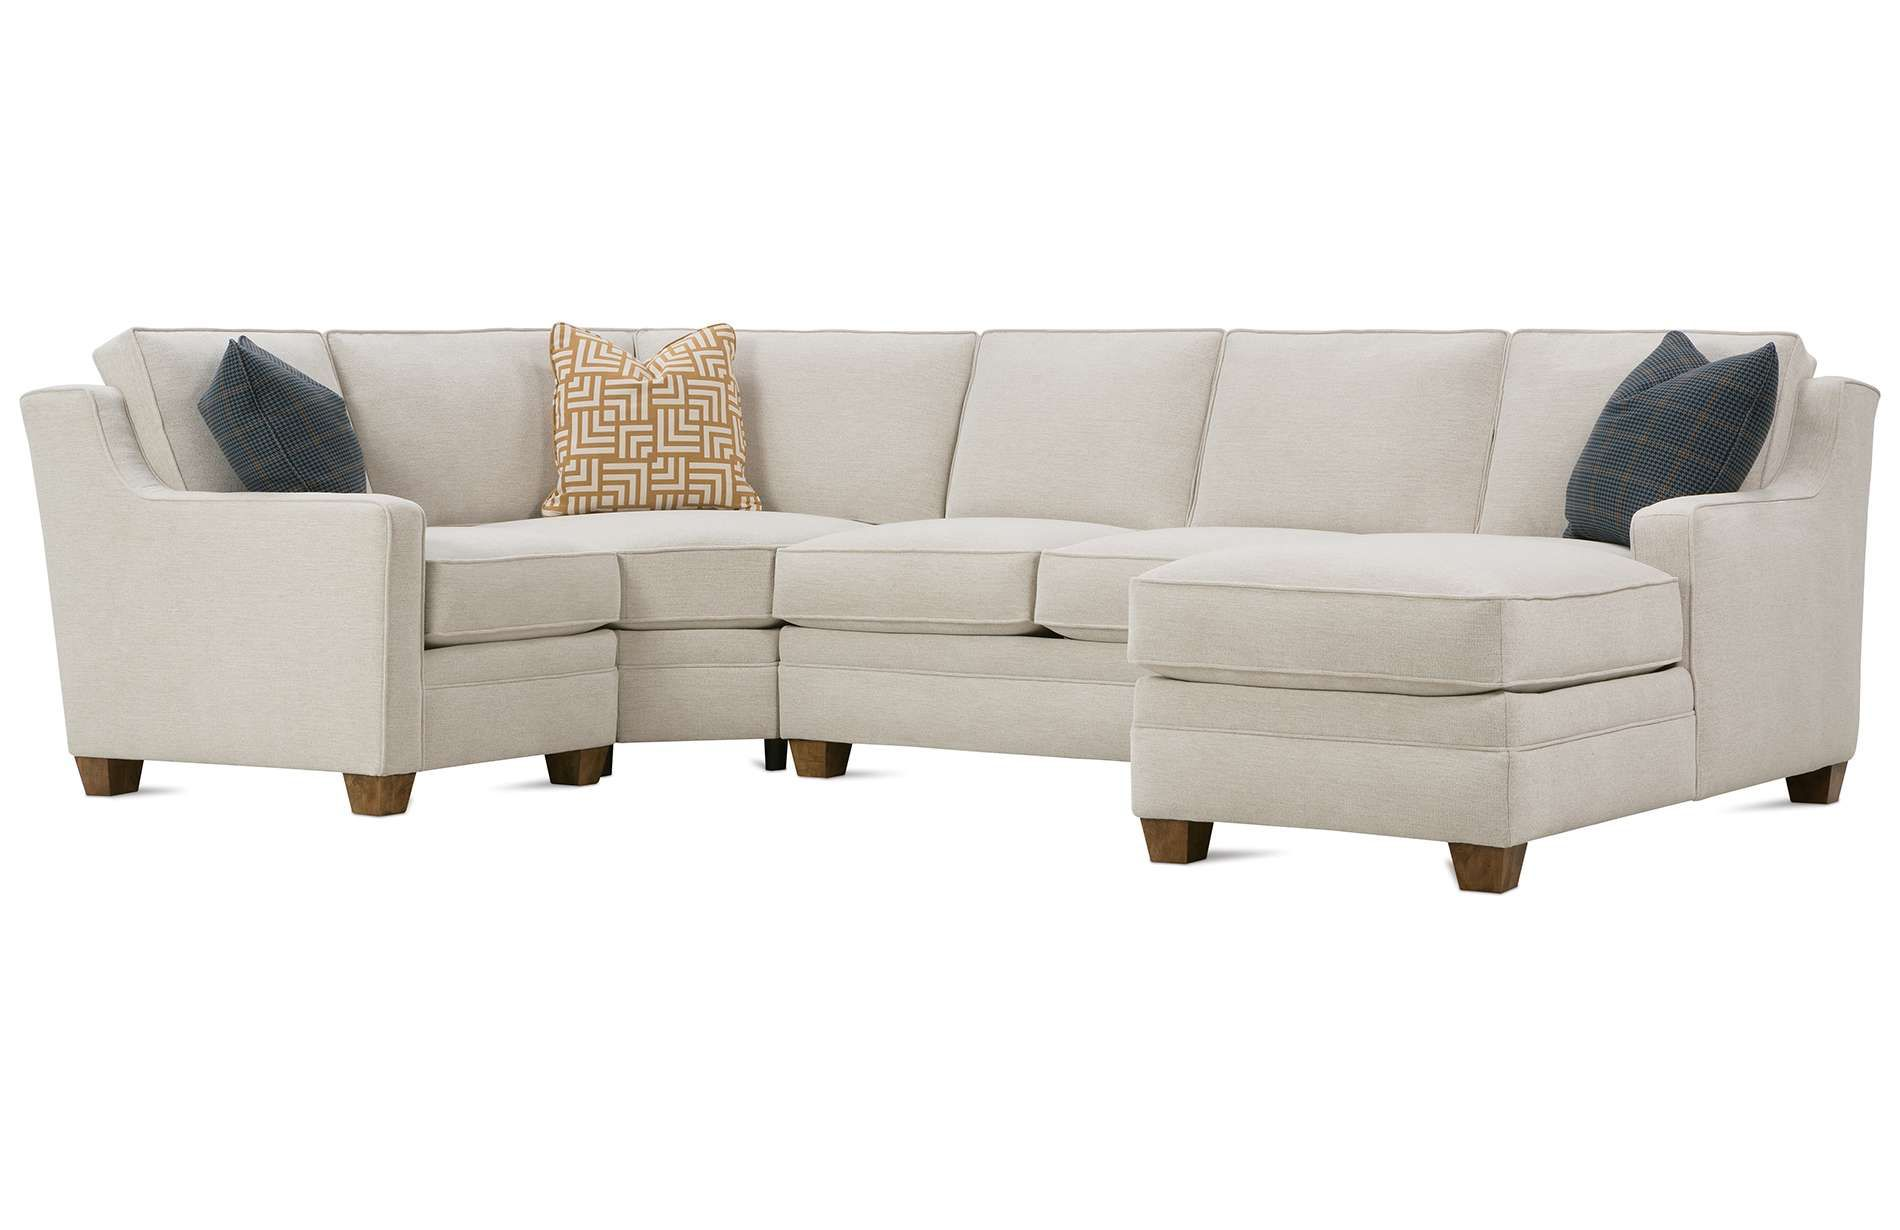 Fuller Sectional Rowe Furniture Custom Sectional Sofa Sectional Sofa Rowe Furniture